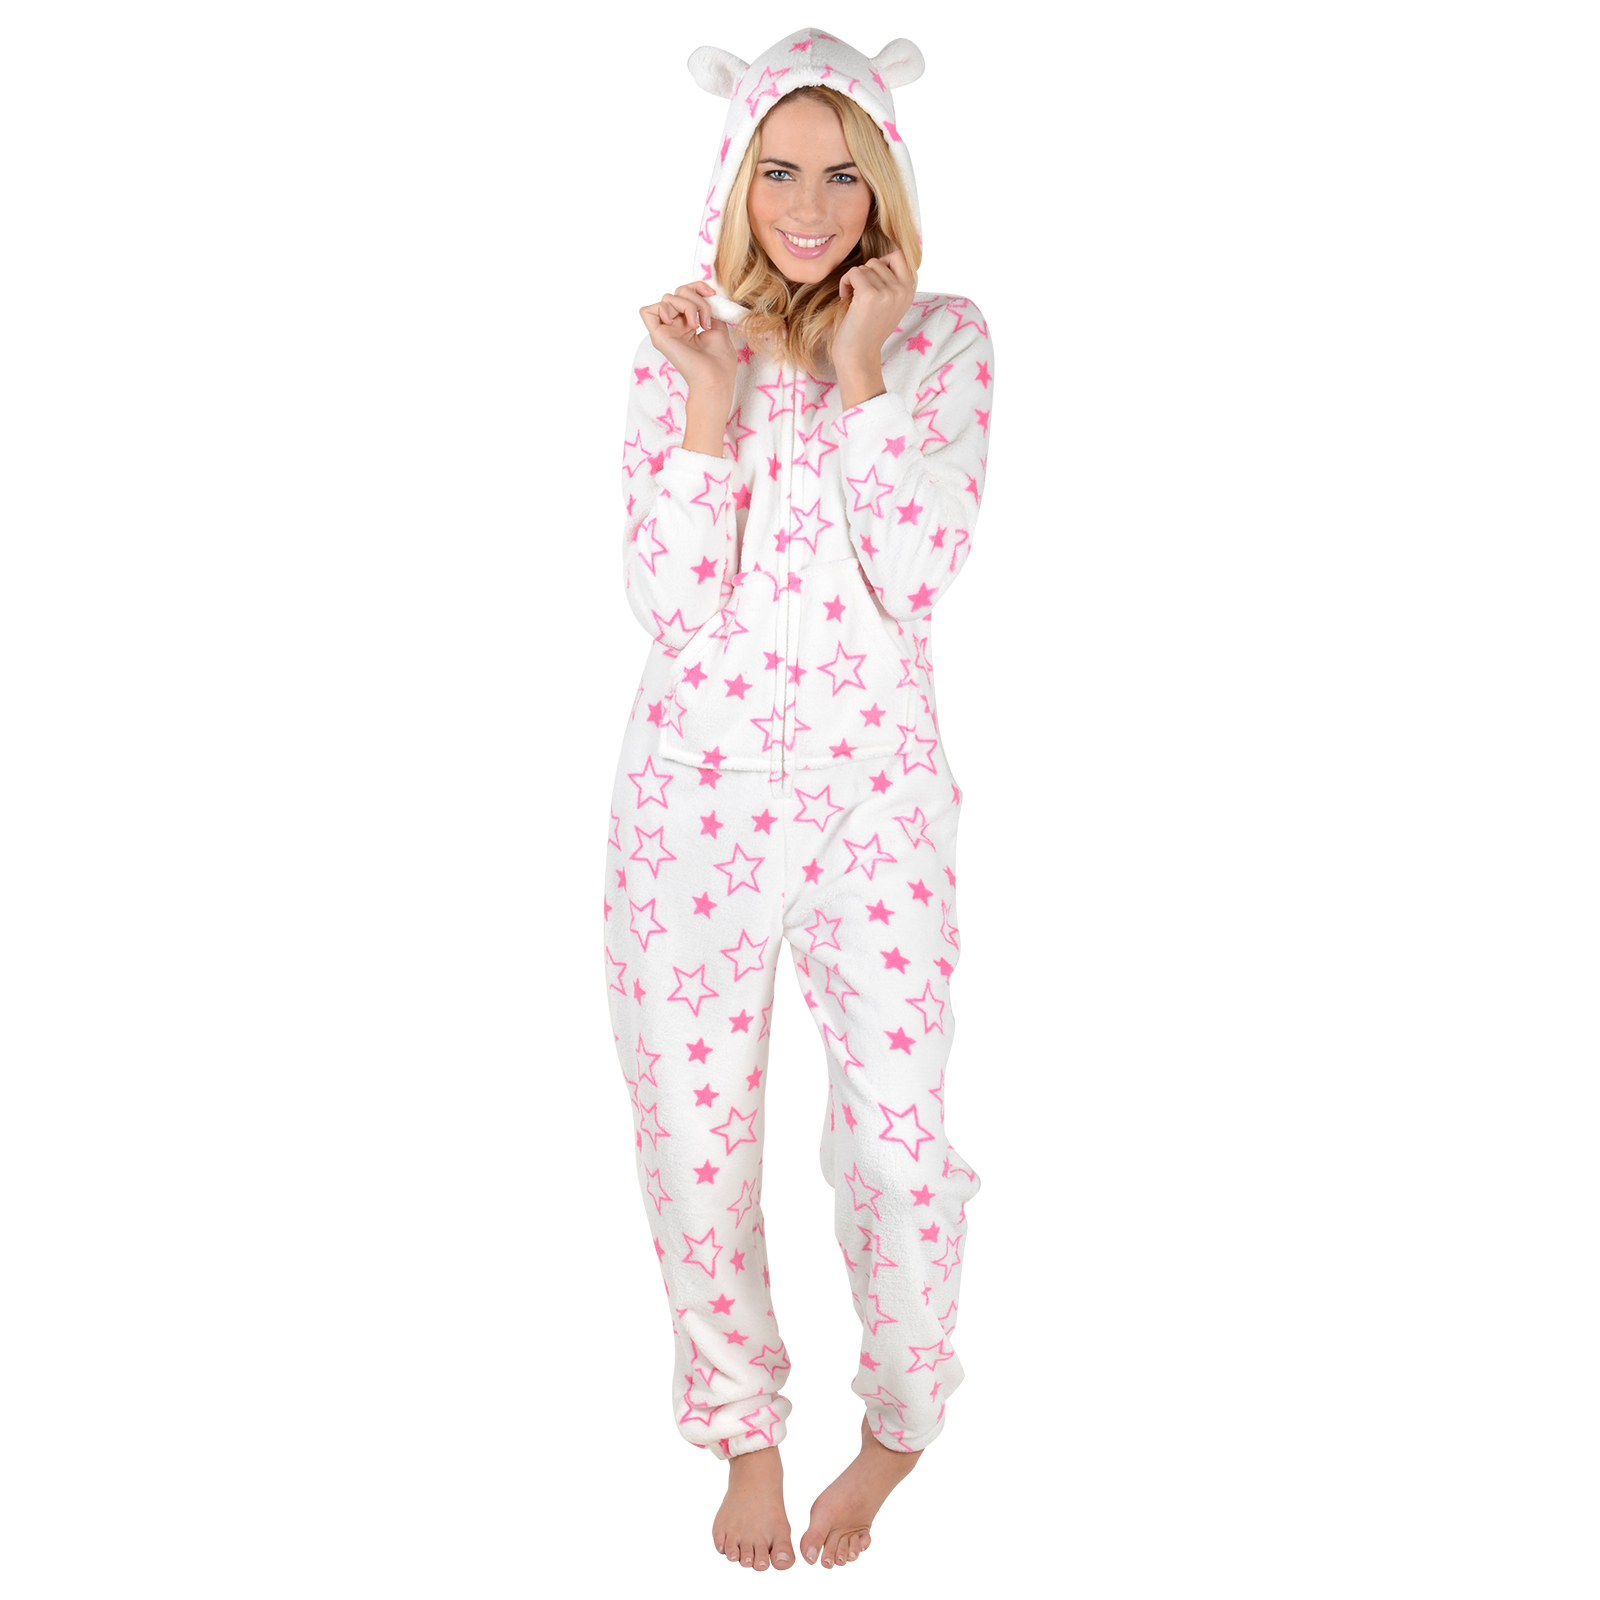 Ladies Stars Print Fleece All In One Pyjamas PJs Sleepsuit Onesie Nightwear